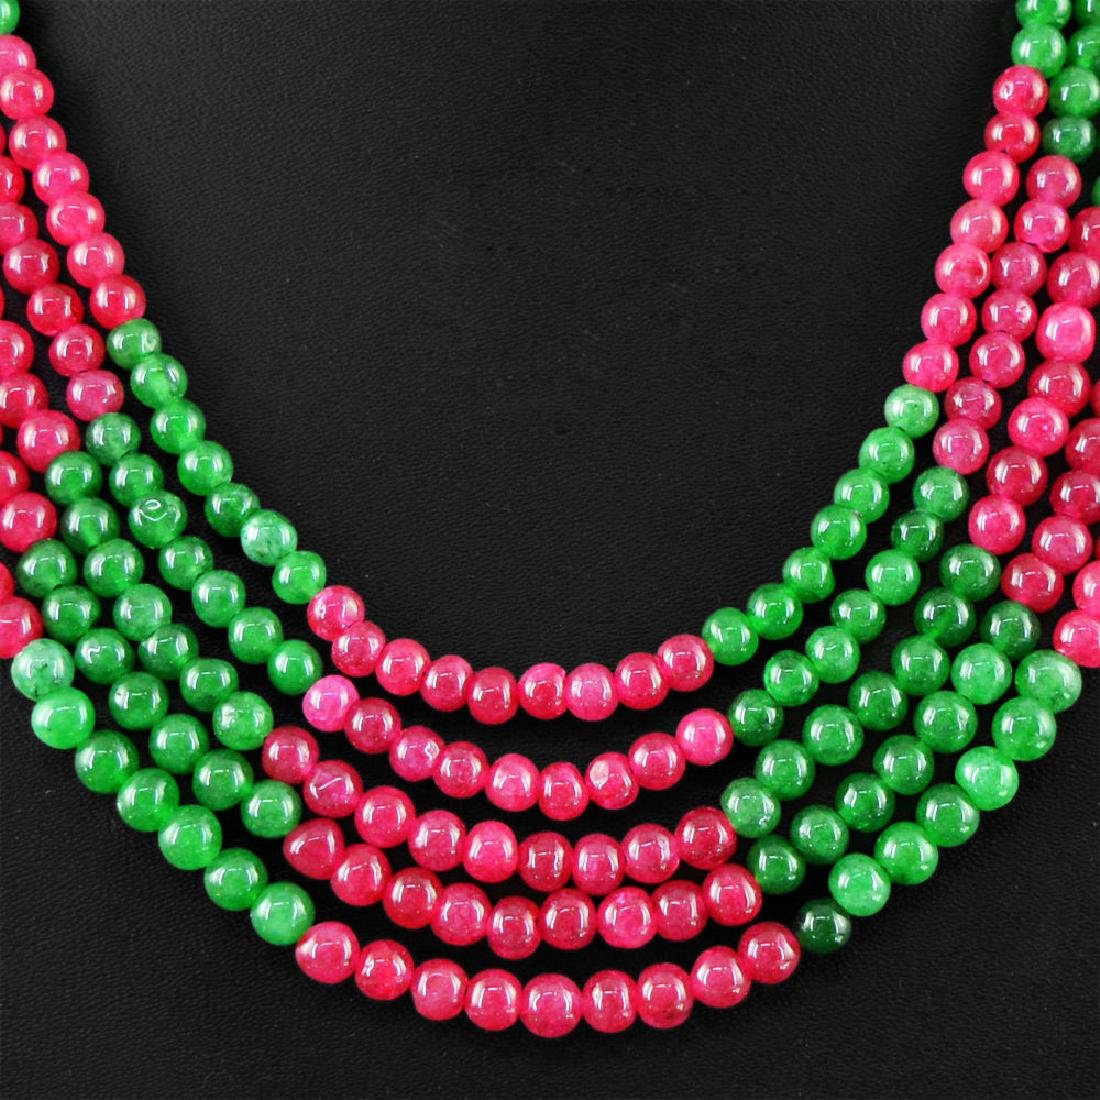 Red Ruby and Green Emerald Beads Necklace - 2